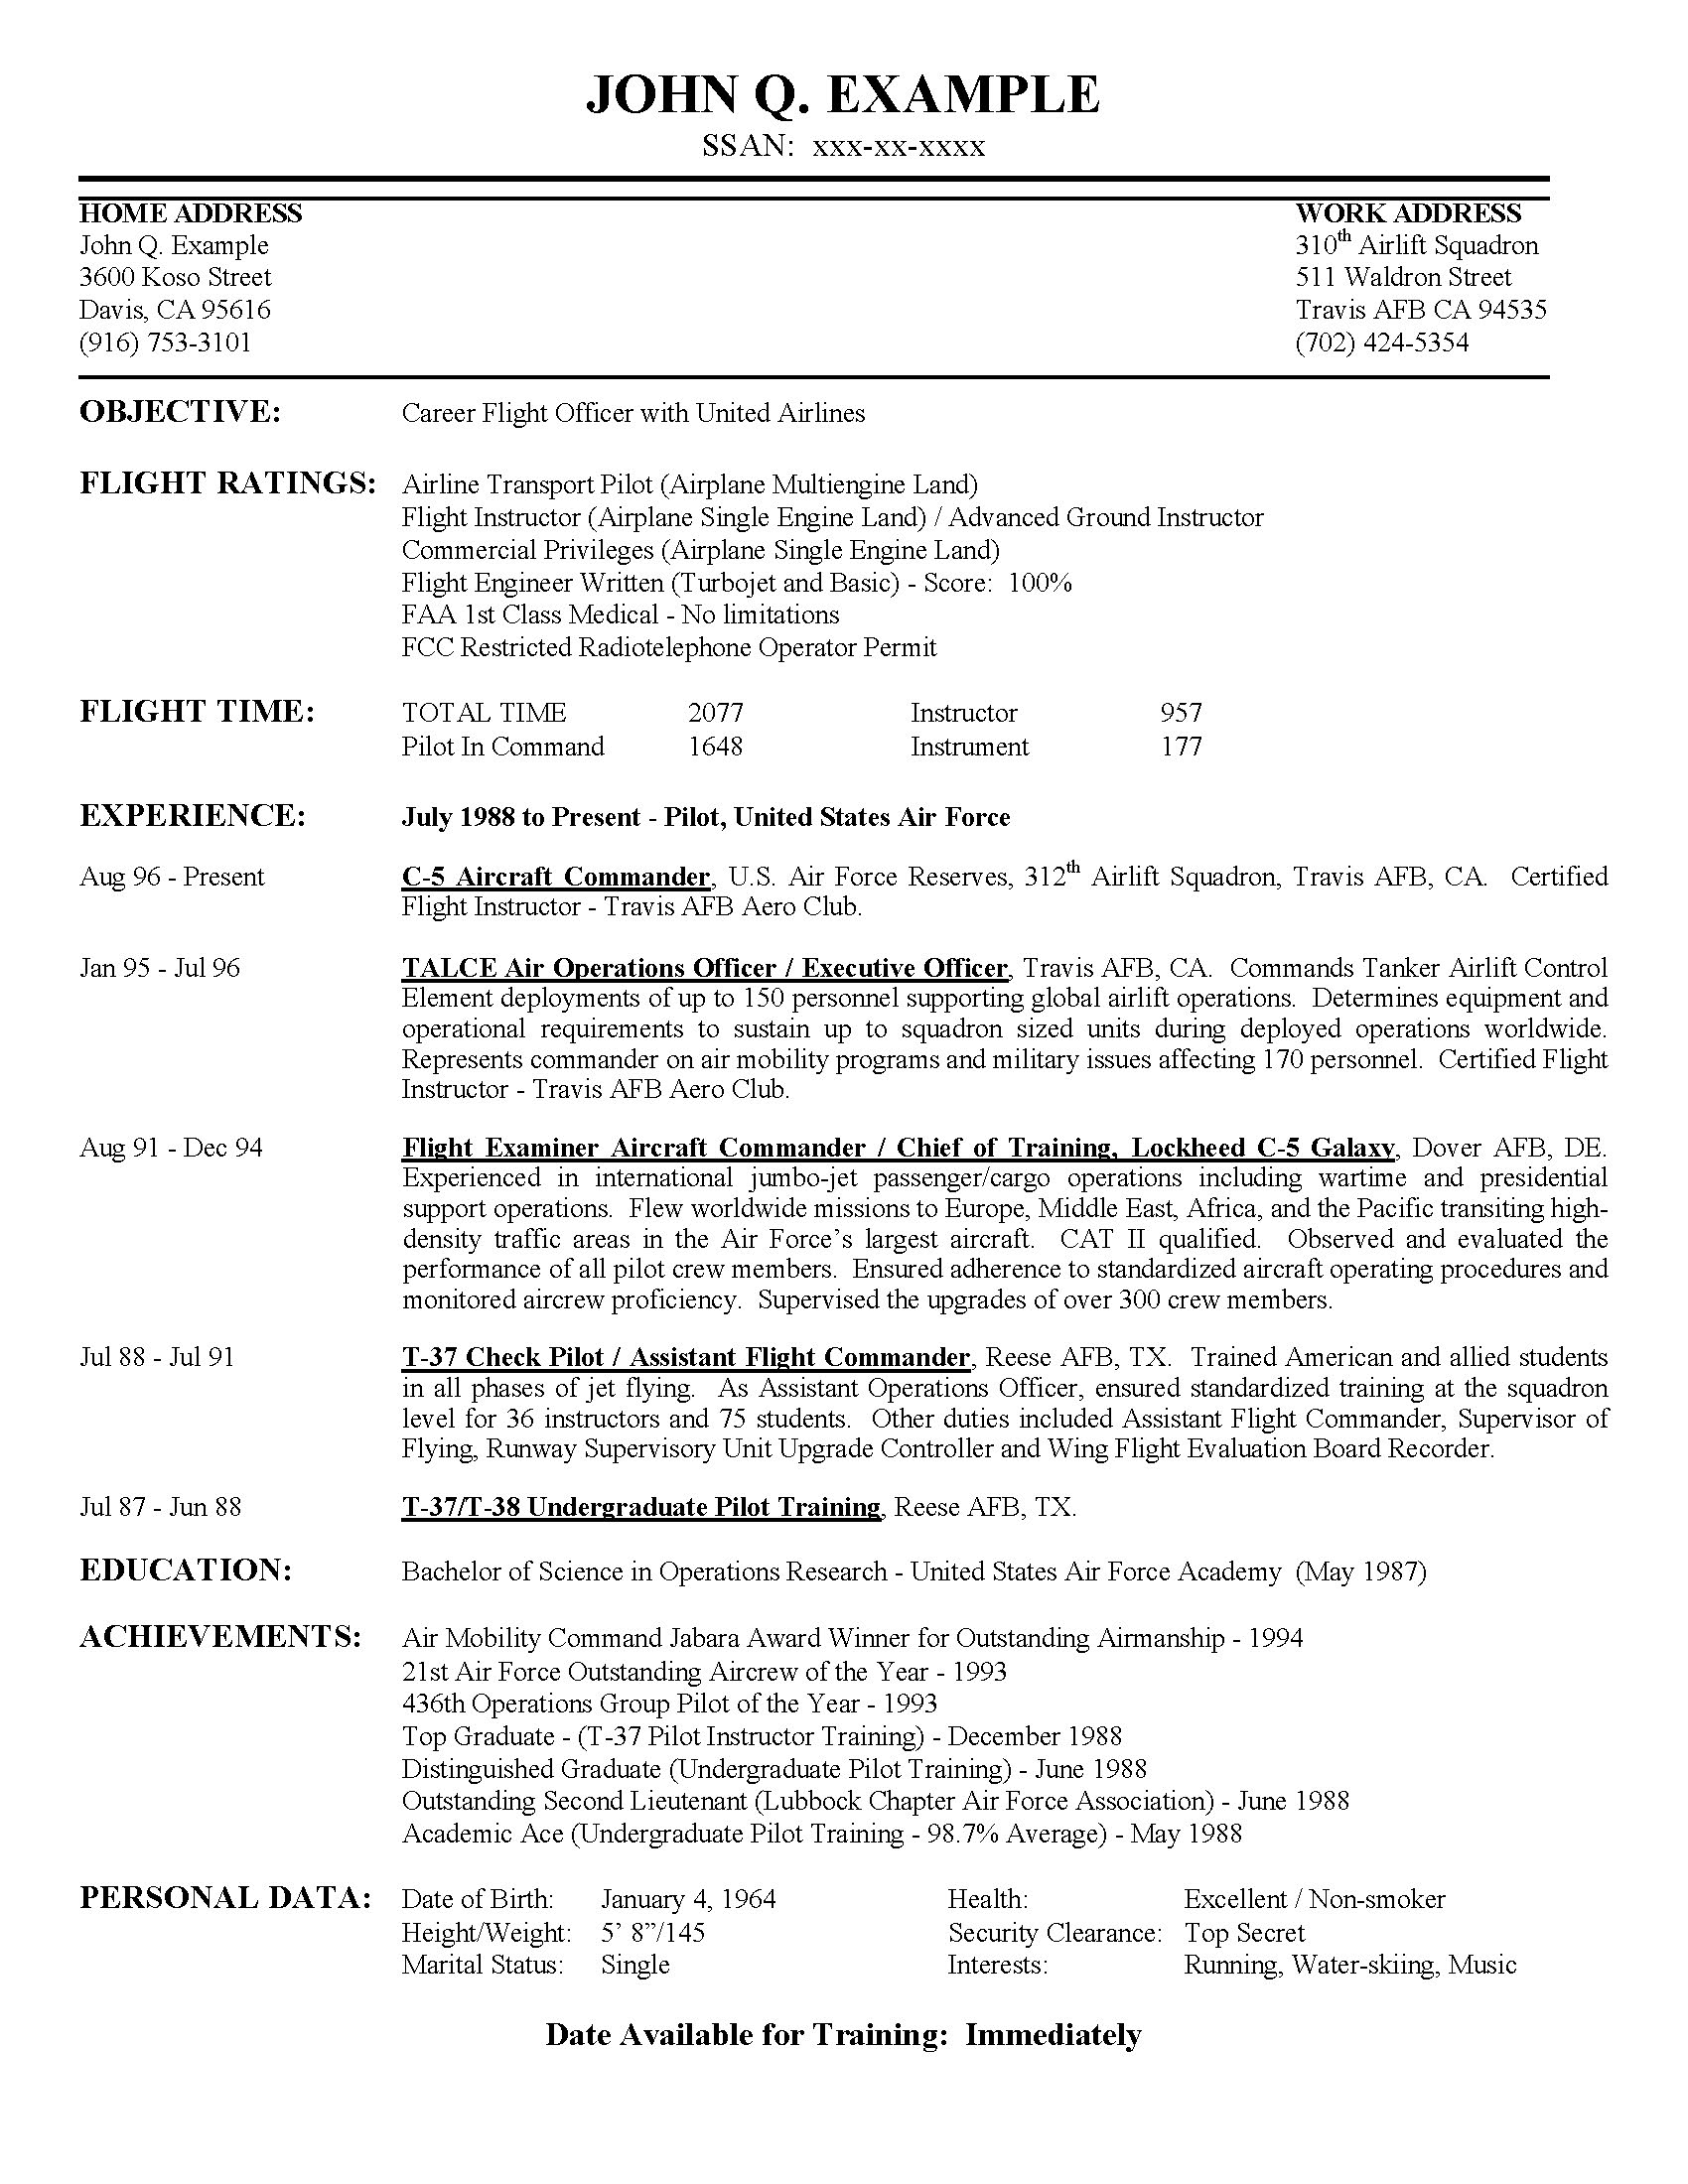 Preparing A Professional Pilot Resume